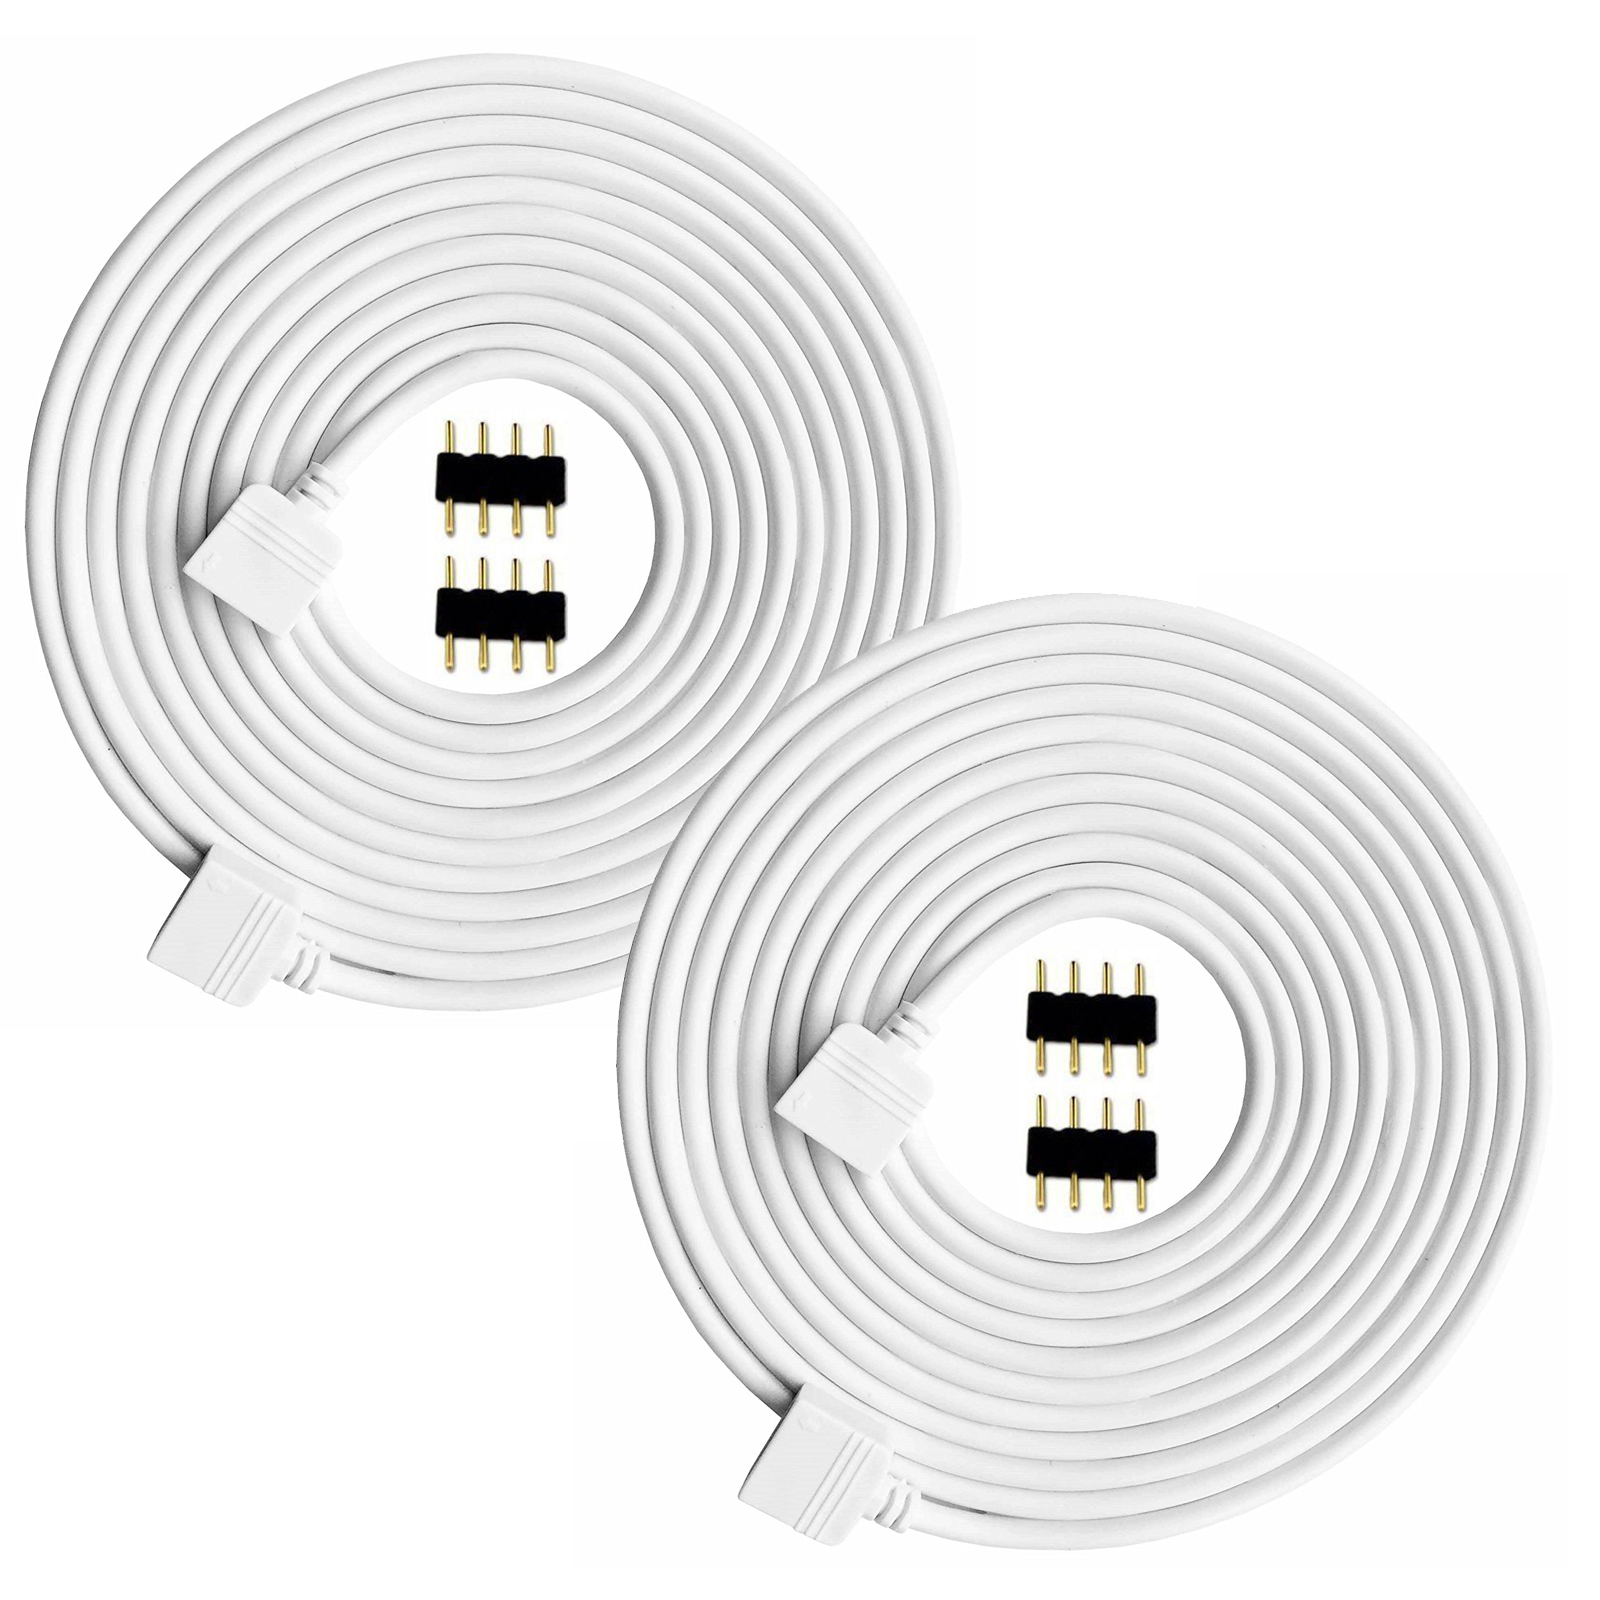 2 Pack 5m 16 5ft Extension Cable Connect Female Plug To